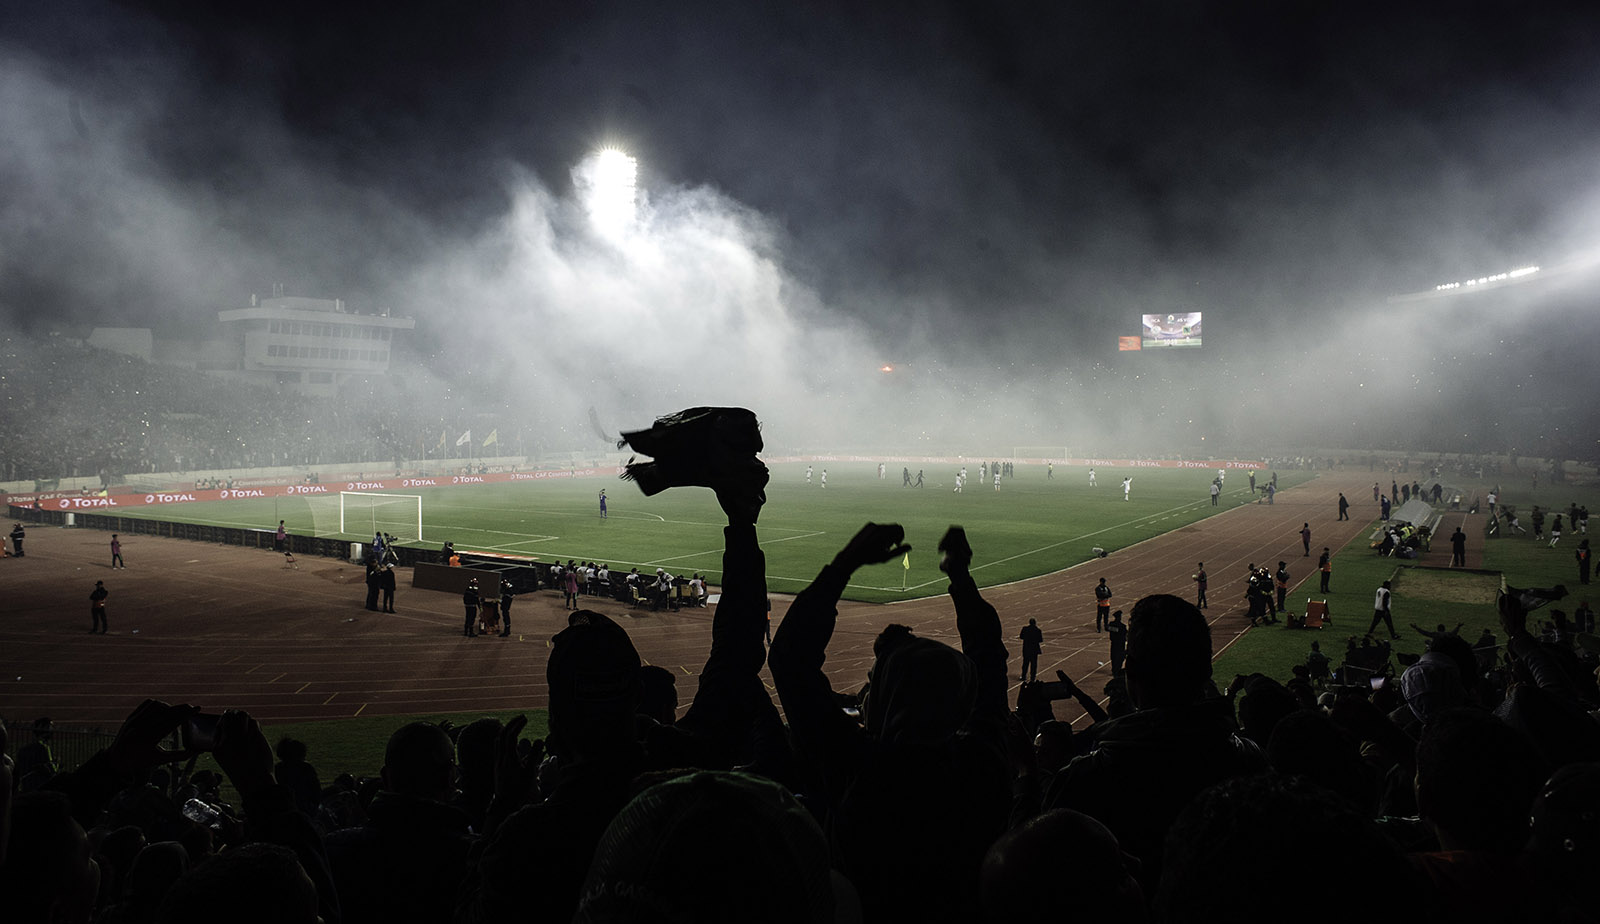 """The """"ultra"""" fans of Raja Casablanca lighting torches at a game in the Mohammed V stadium, Morocco, November 25, 2018"""